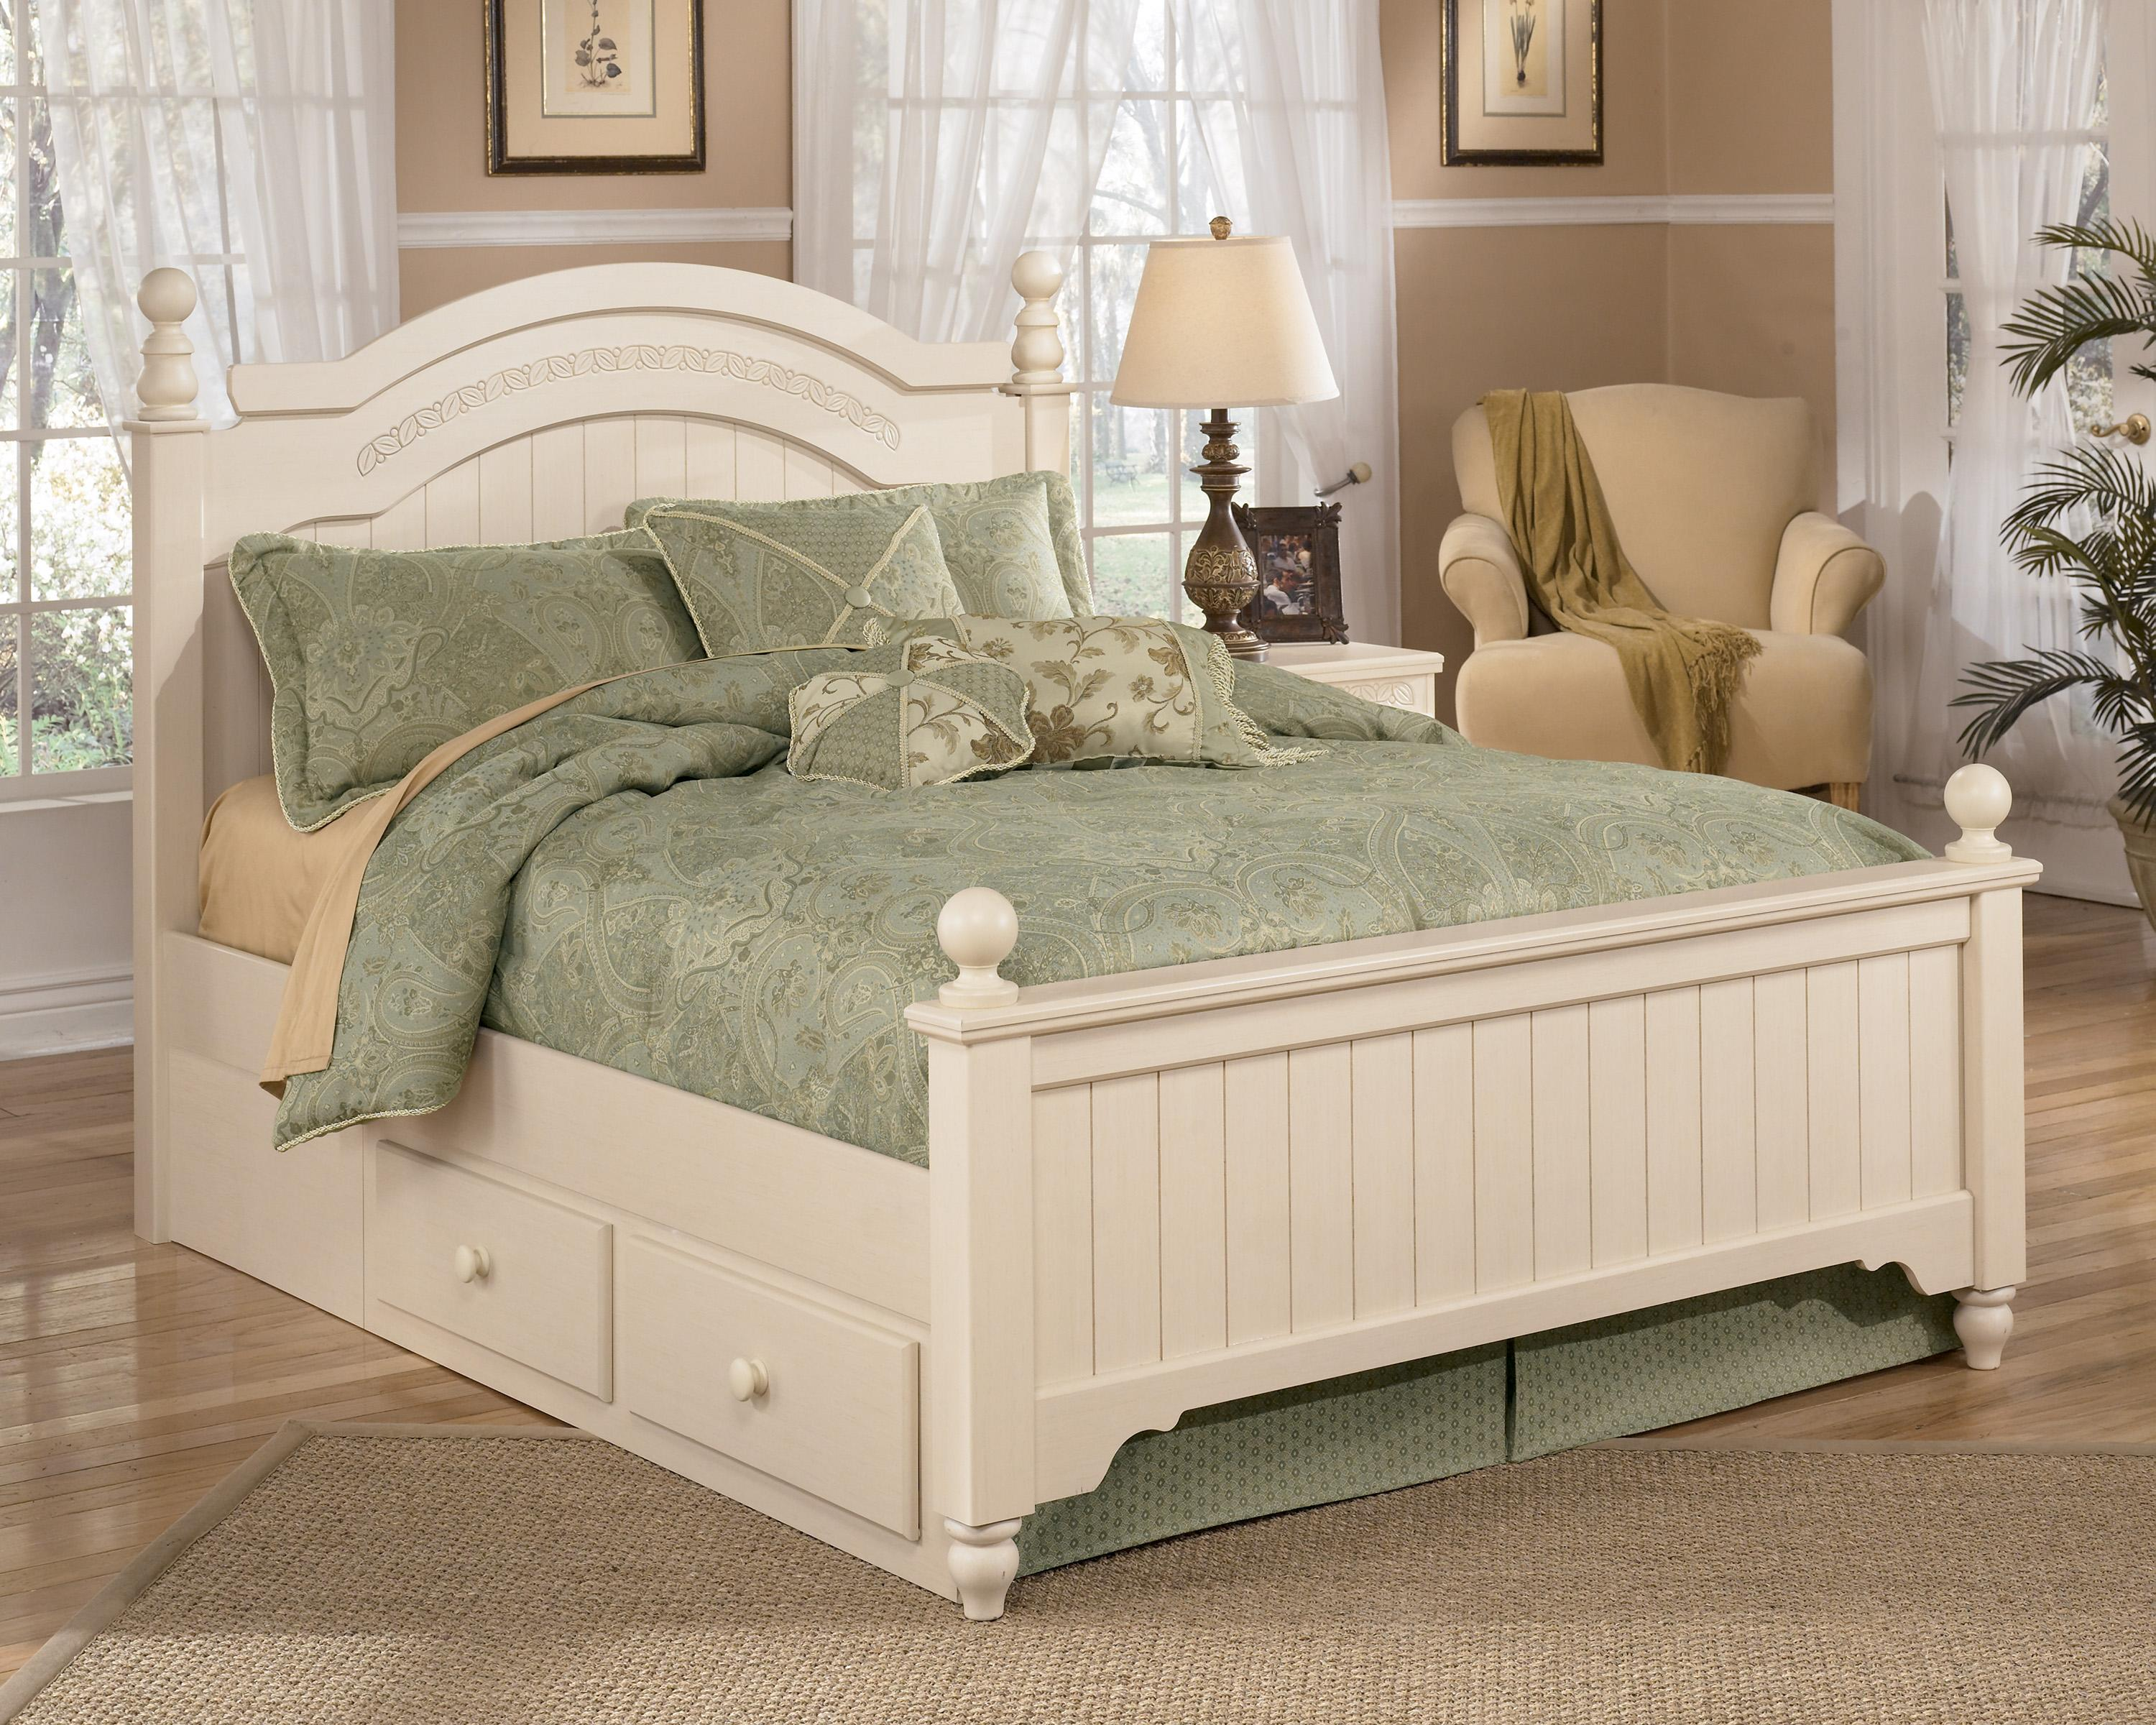 Signature Design by Ashley Cottage Retreat Full Poster Bed with Underbed Storage - Item Number: B213-57N+54N+89N+70